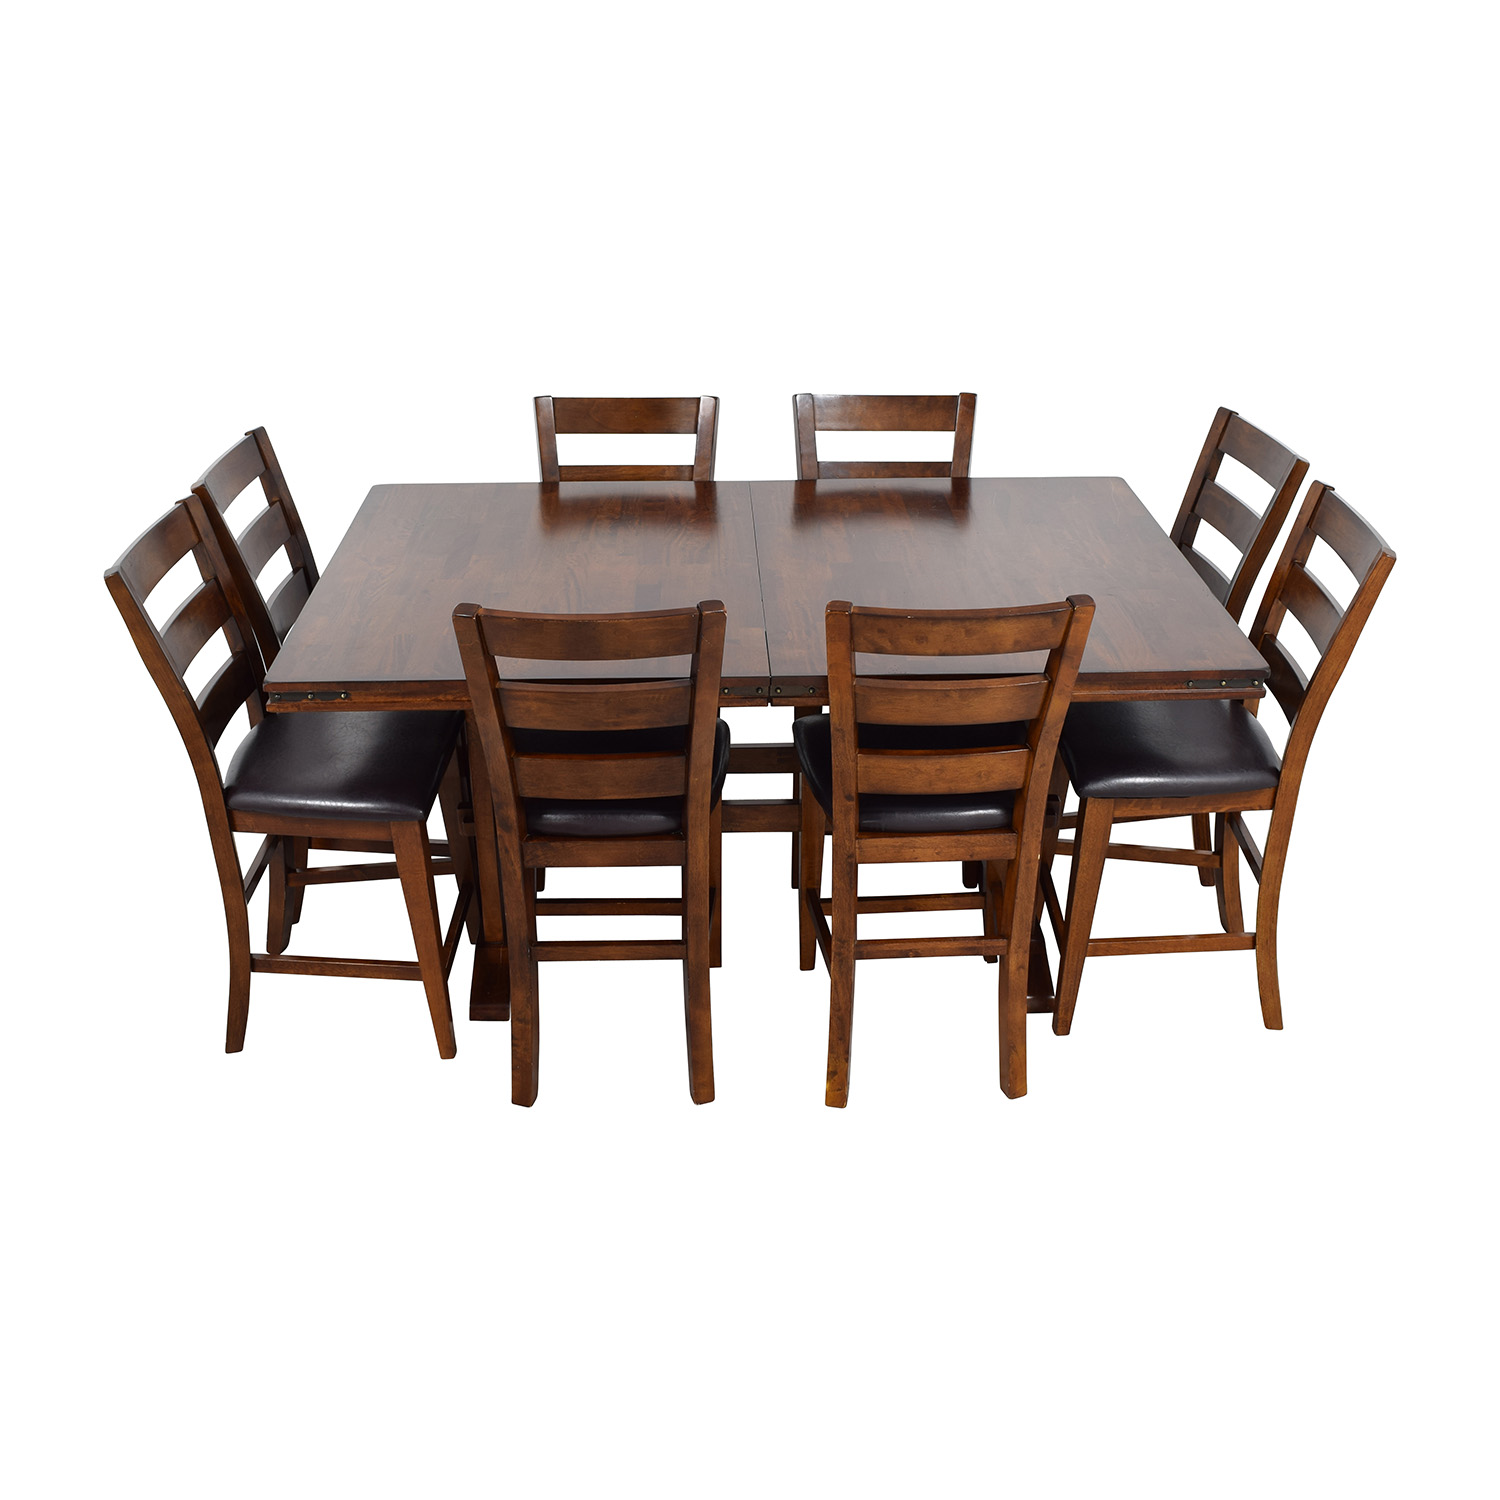 Bobs Furniture Bobs Furniture Enormous Counter Pub Table Set